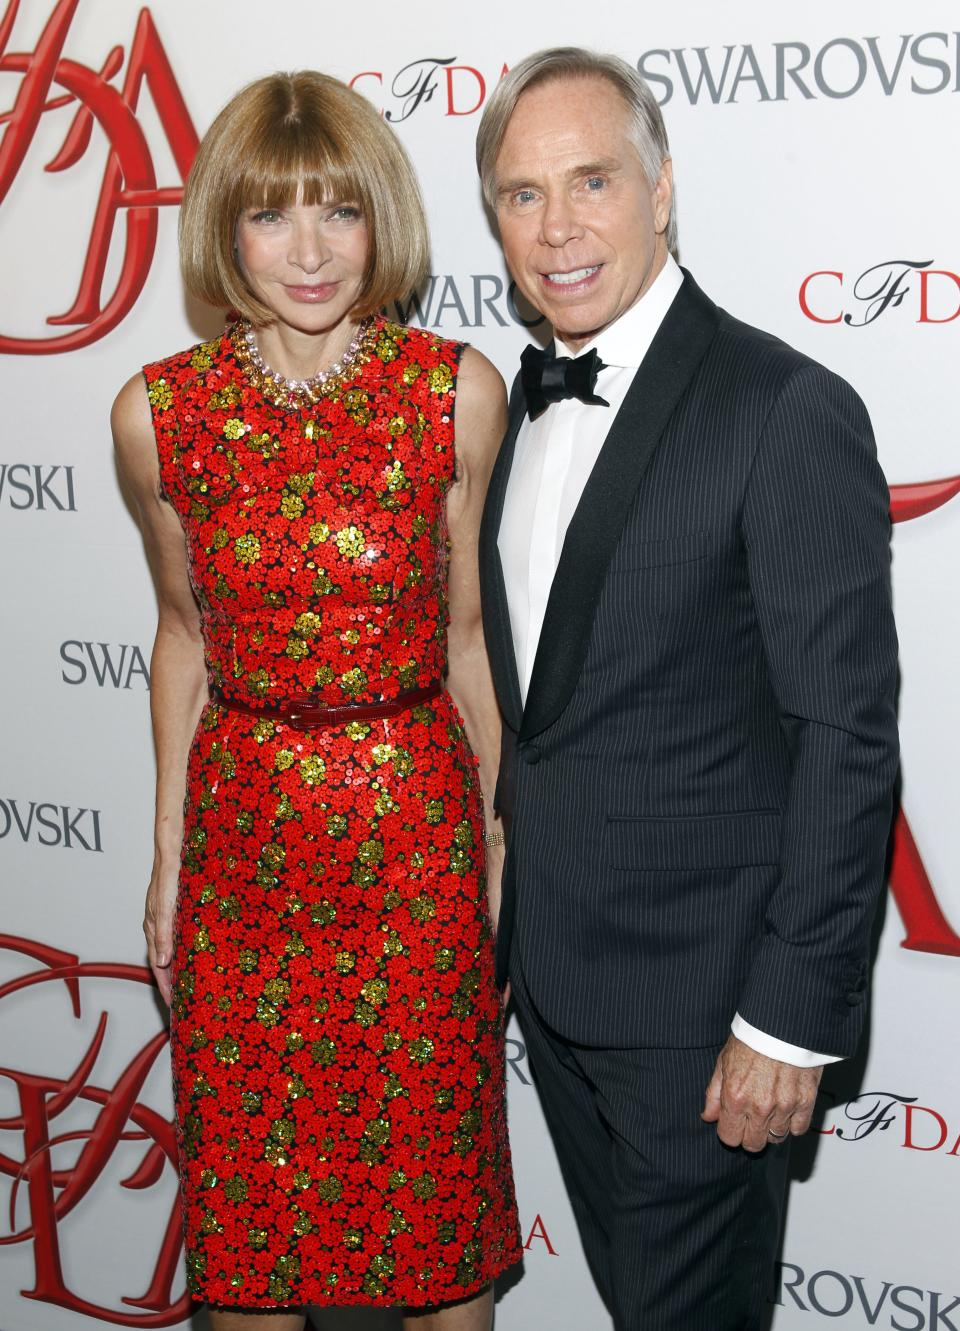 Designer Tommy Hilfiger poses with Anna Wintour backstage after winning the Geoffrey Beene Lifetime Achievement Award at the CFDA Fashion Awards on Monday, June 4, 2012 in New York. (Photo by Jason DeCrow/Invision/AP)